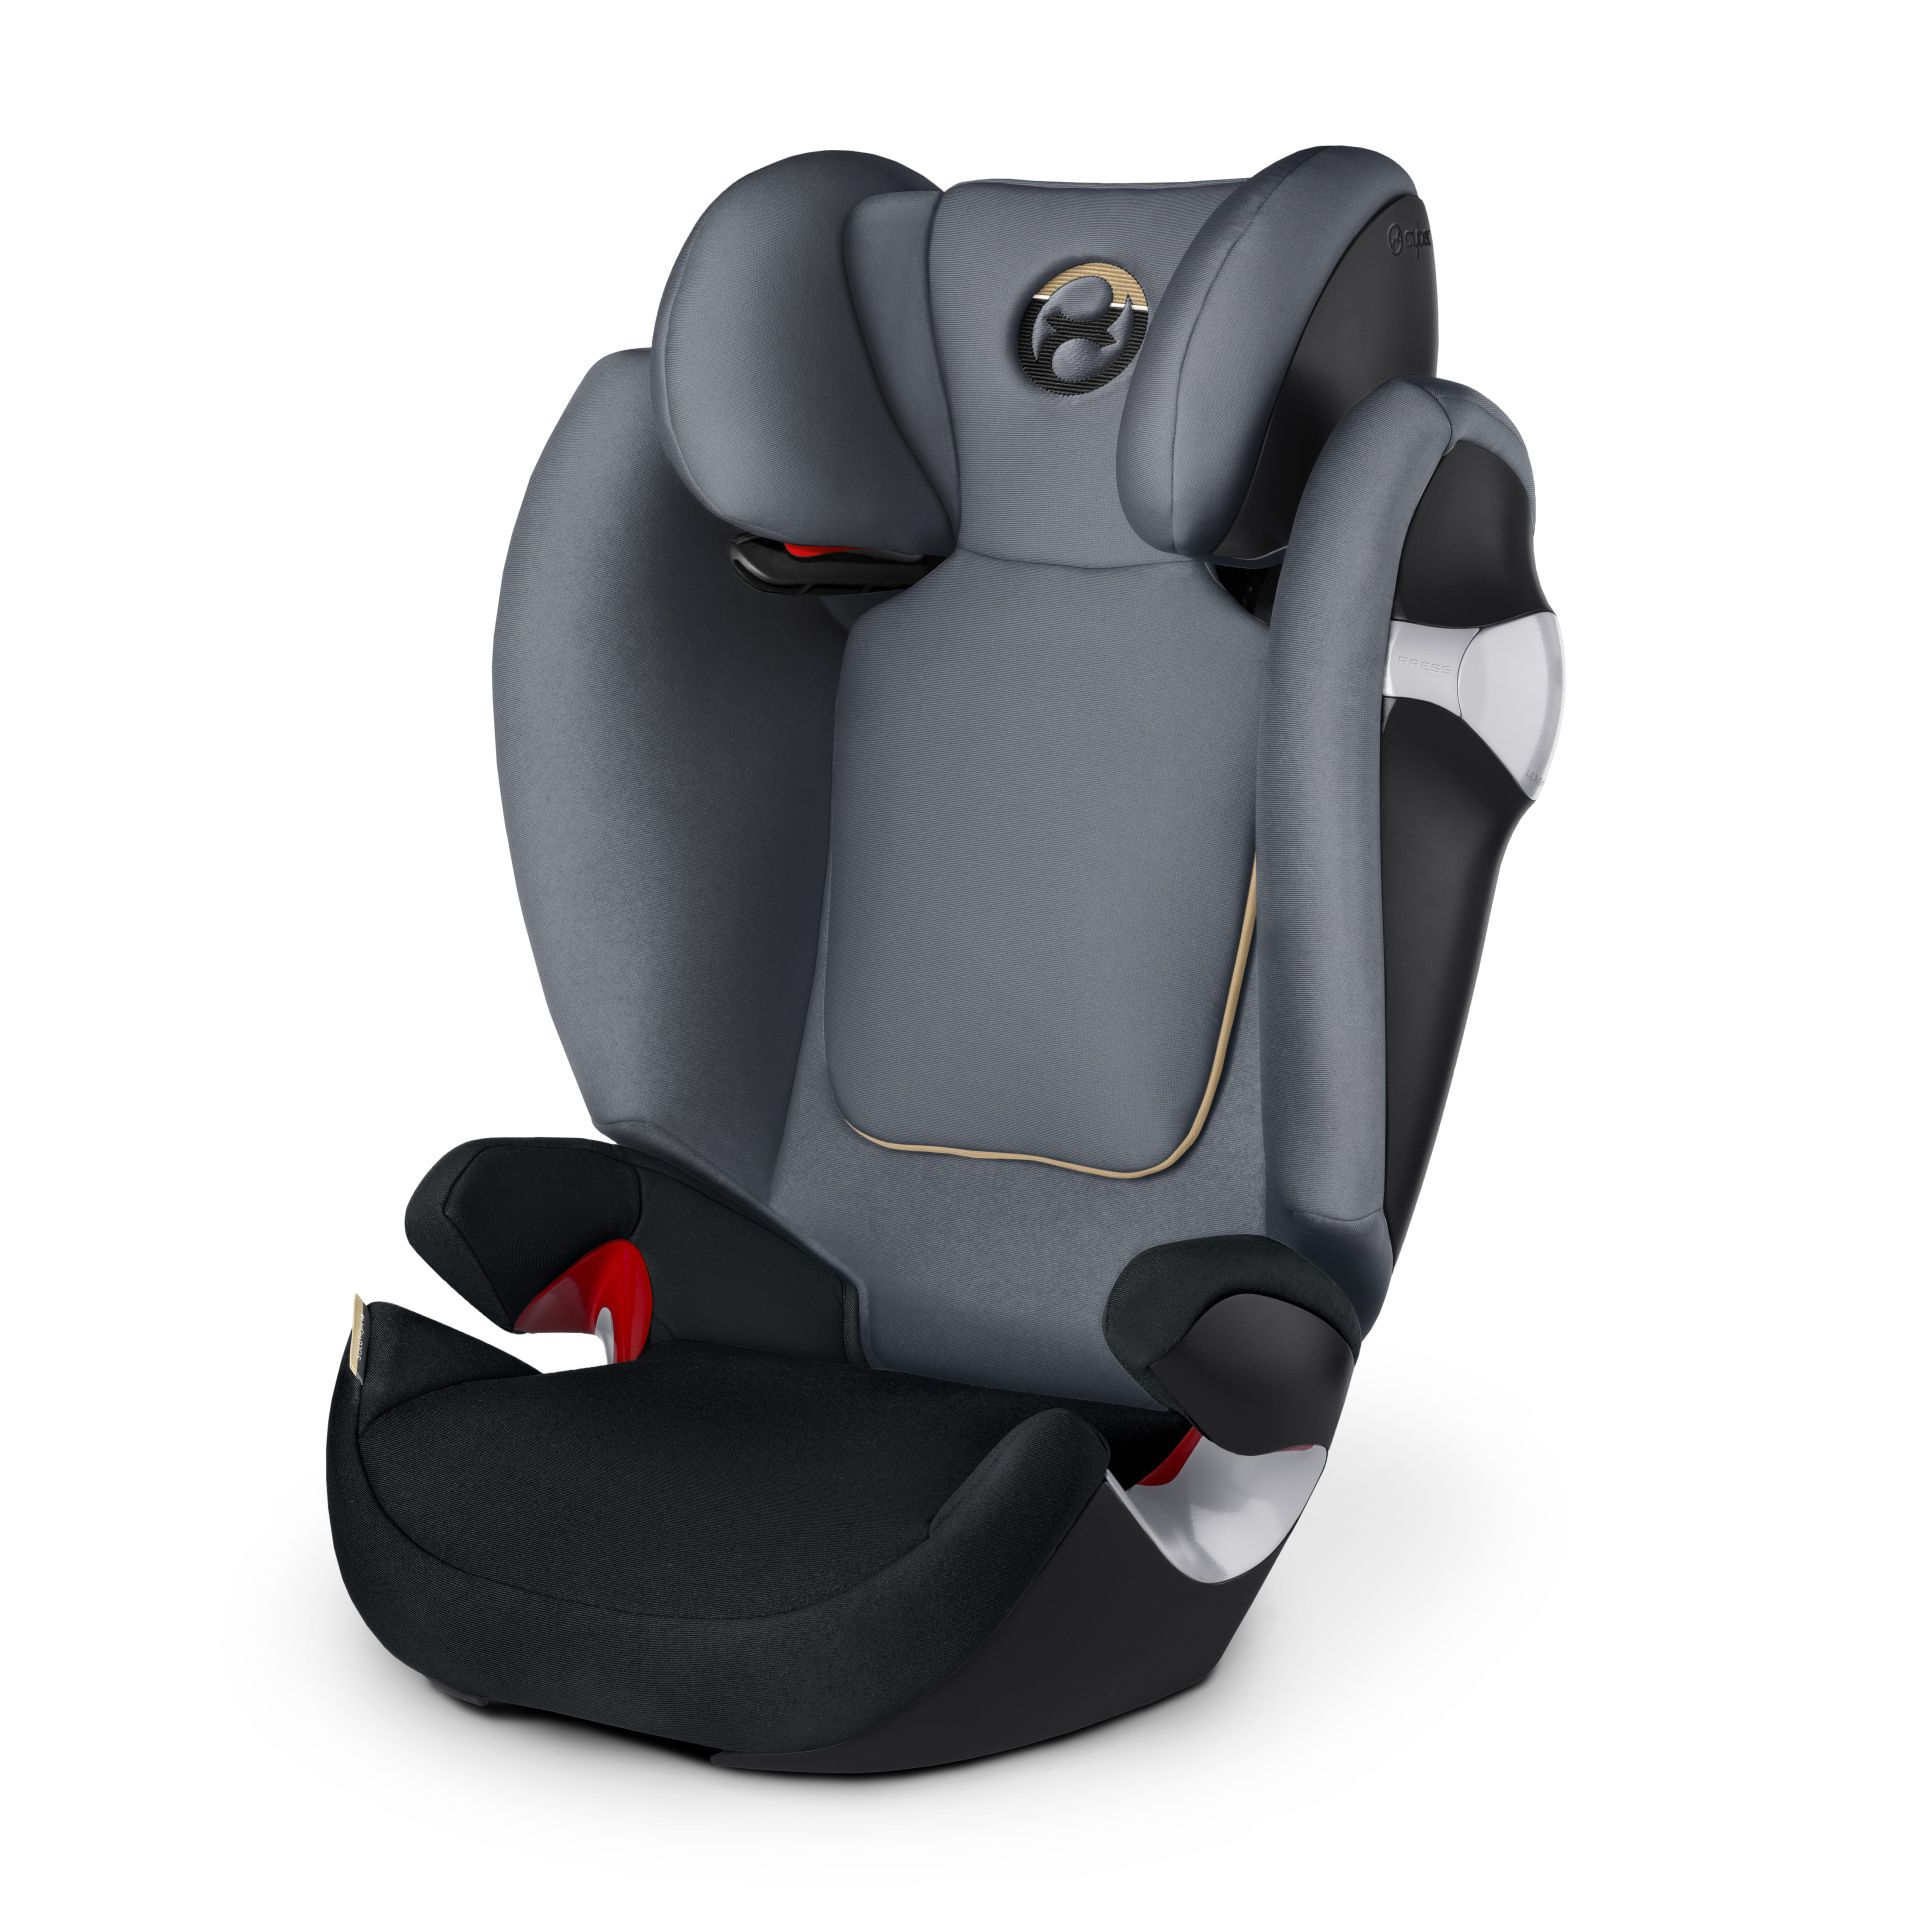 Cybex Silla Silla De Coche Solution M Cybex 2017 Graphite Black Dark